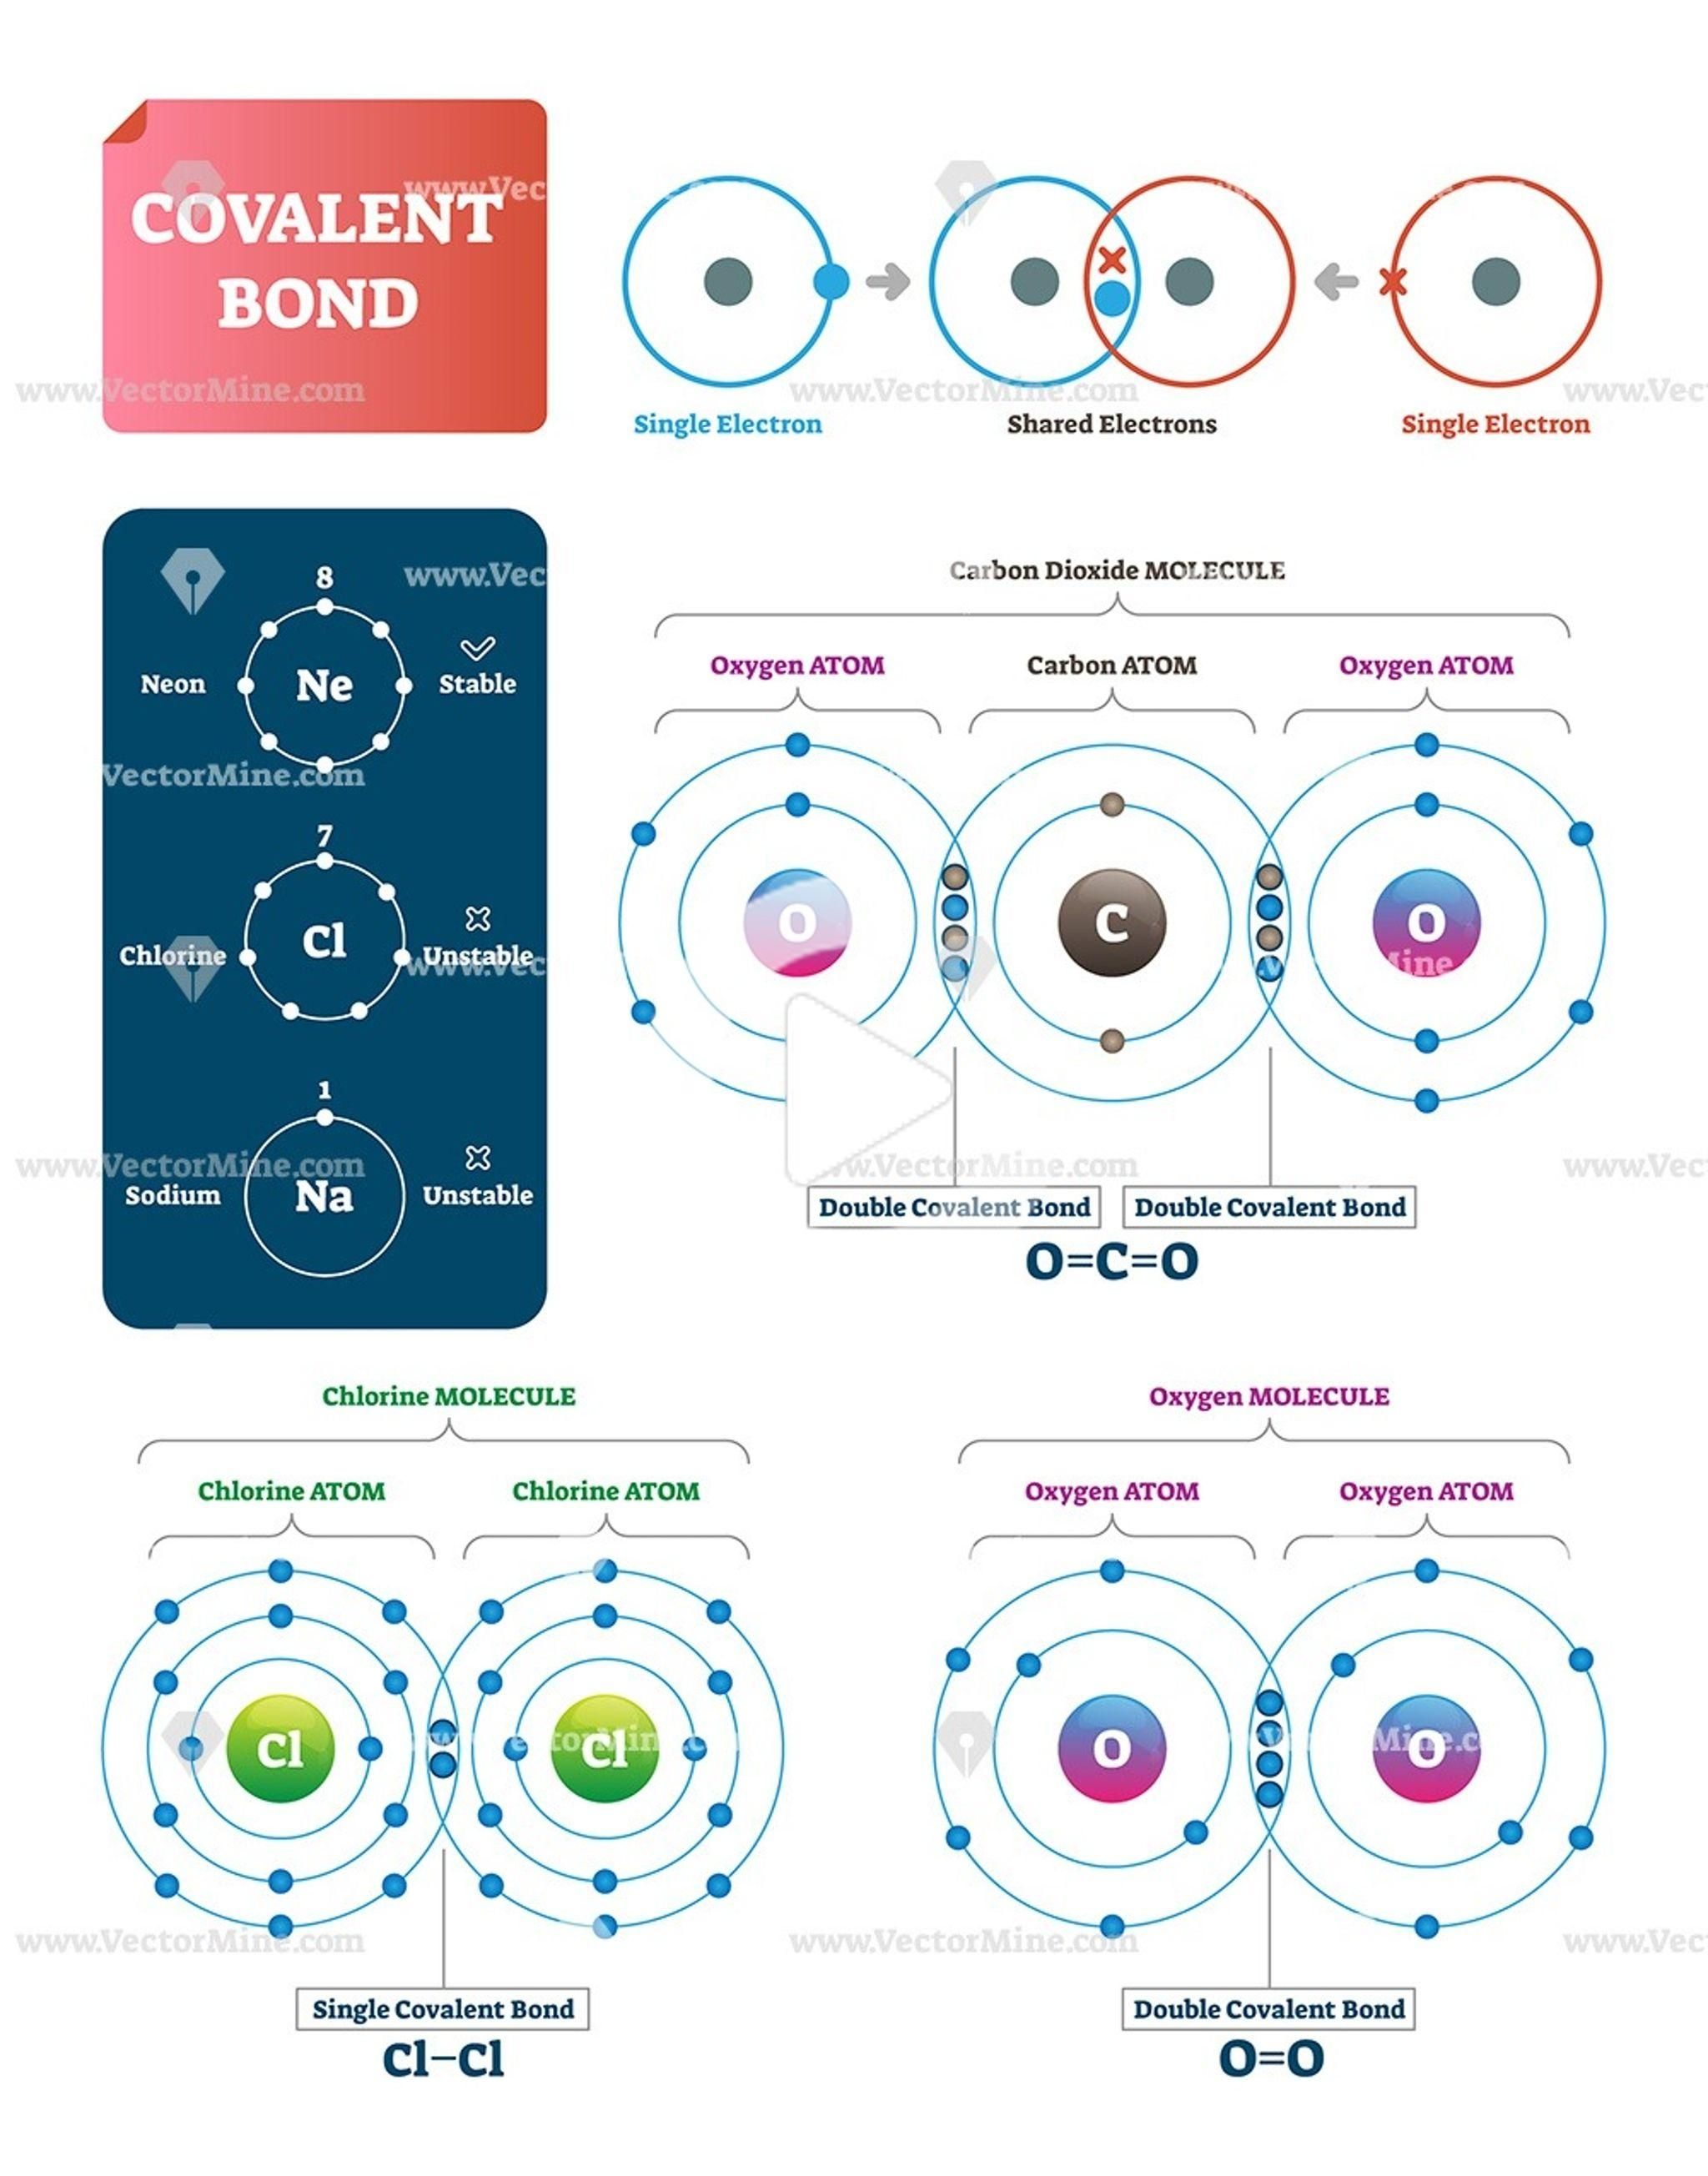 Covalent Bond Vector Illustration Infographic Diagrams In 2020 Covalent Bonding Teaching Chemistry Chemistry Classroom